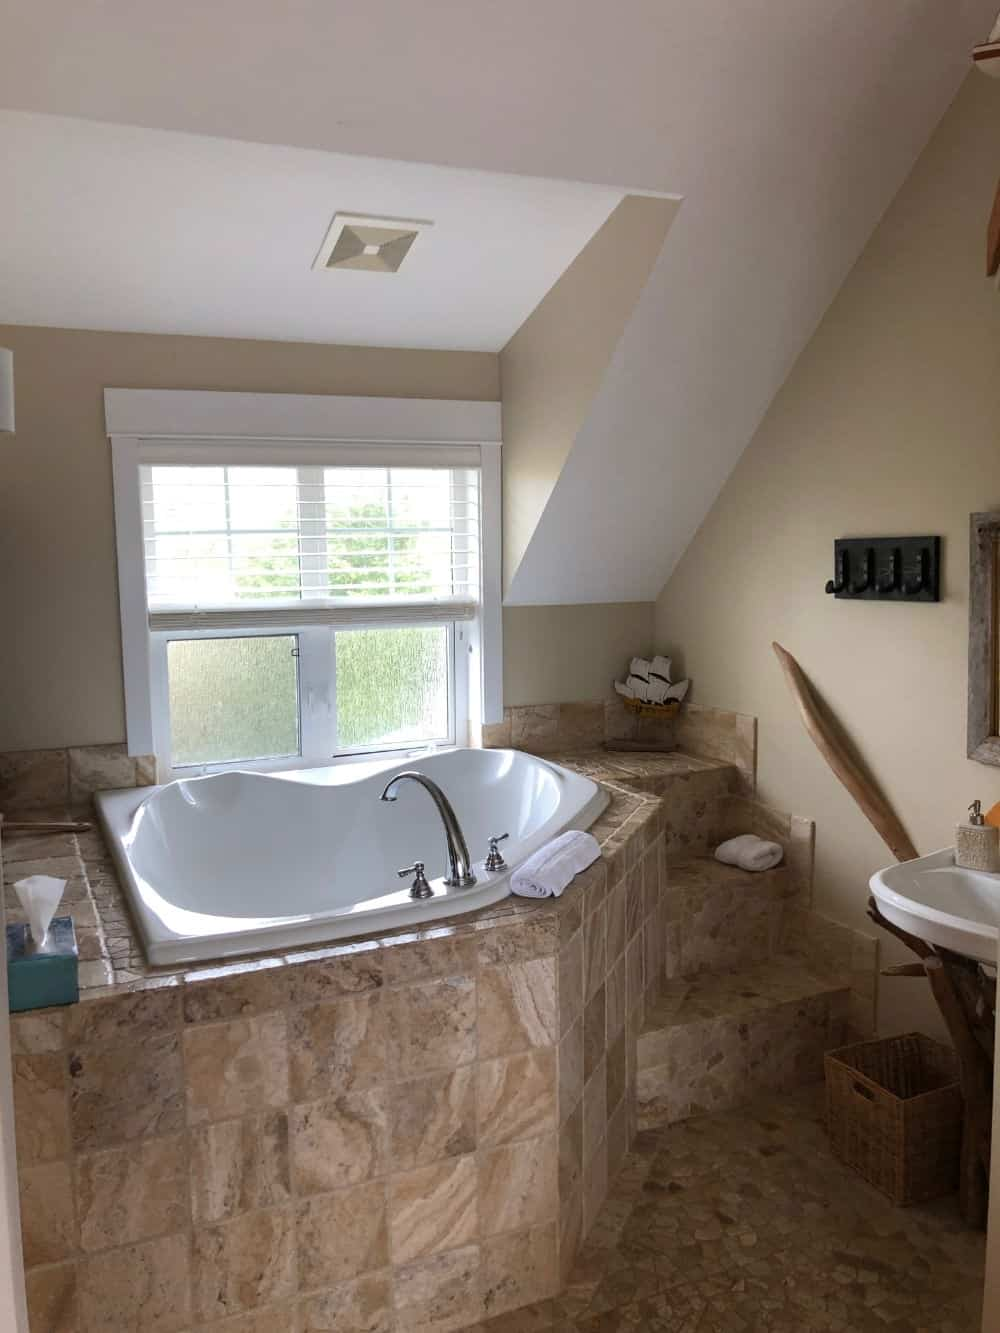 The primary bedroom included this spectacular bathtub alcove and bathroom.